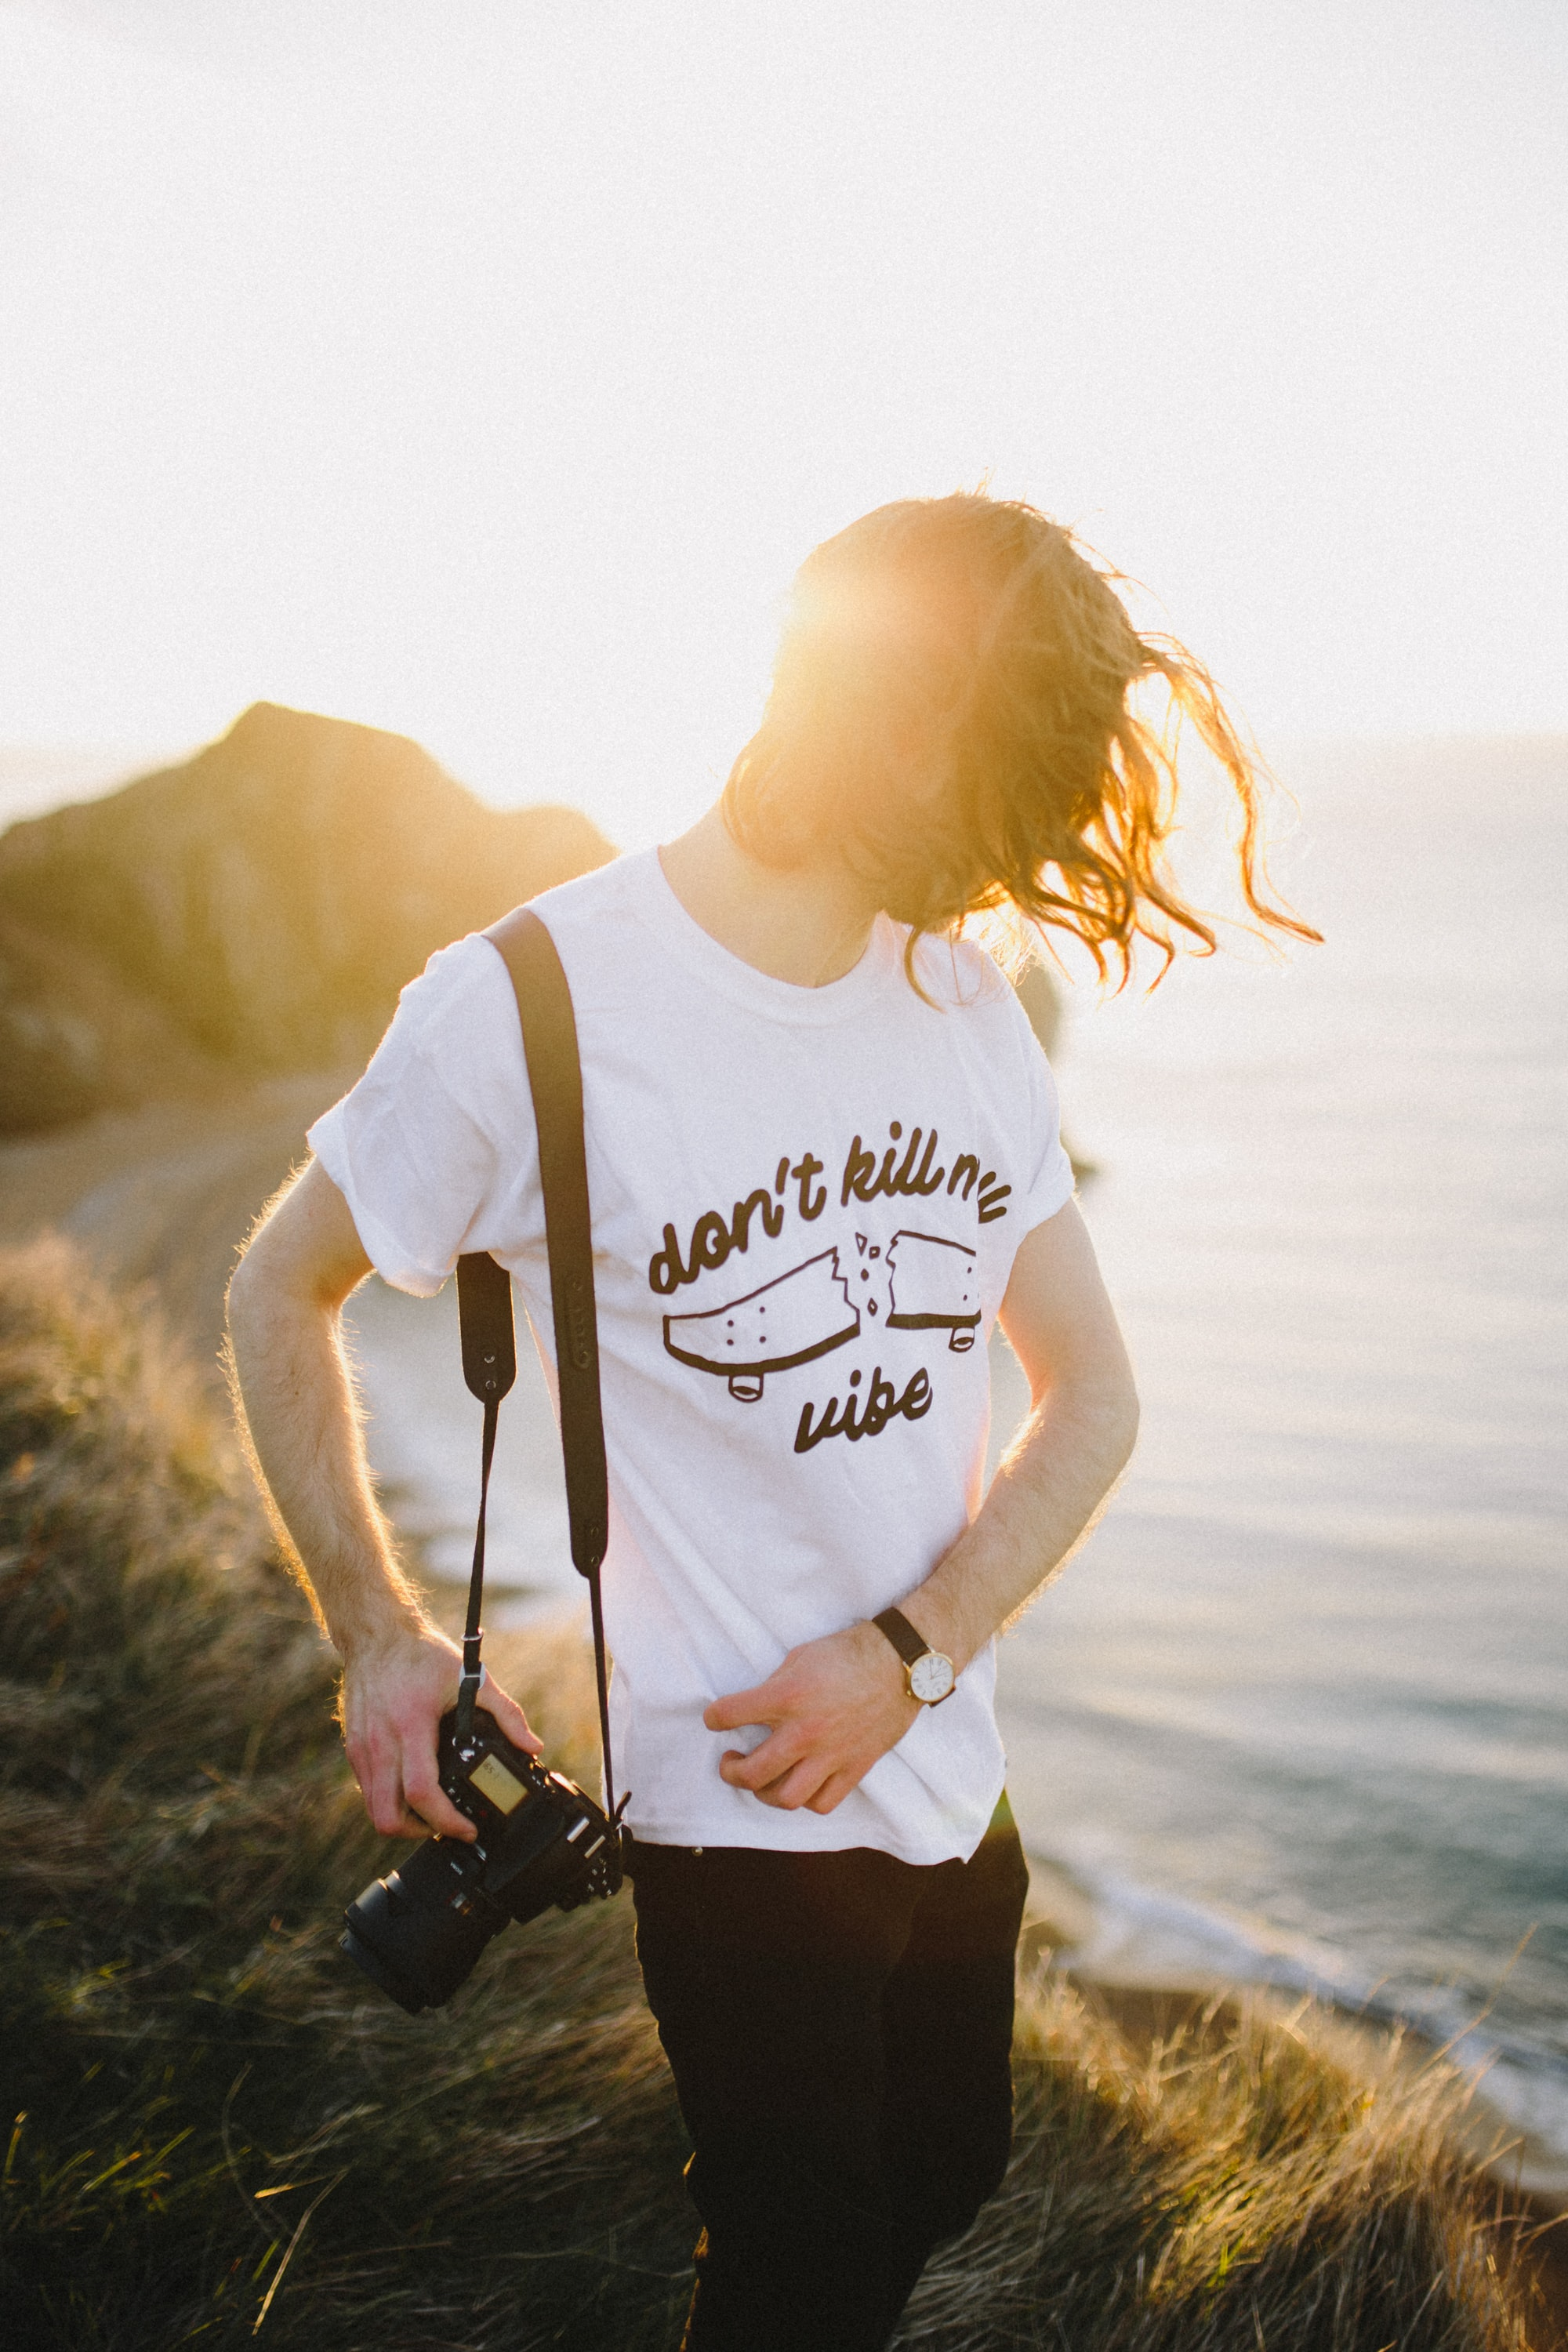 """A person with a camera on the seaside wears a t-shirt that says """"don't kill my vibe"""""""